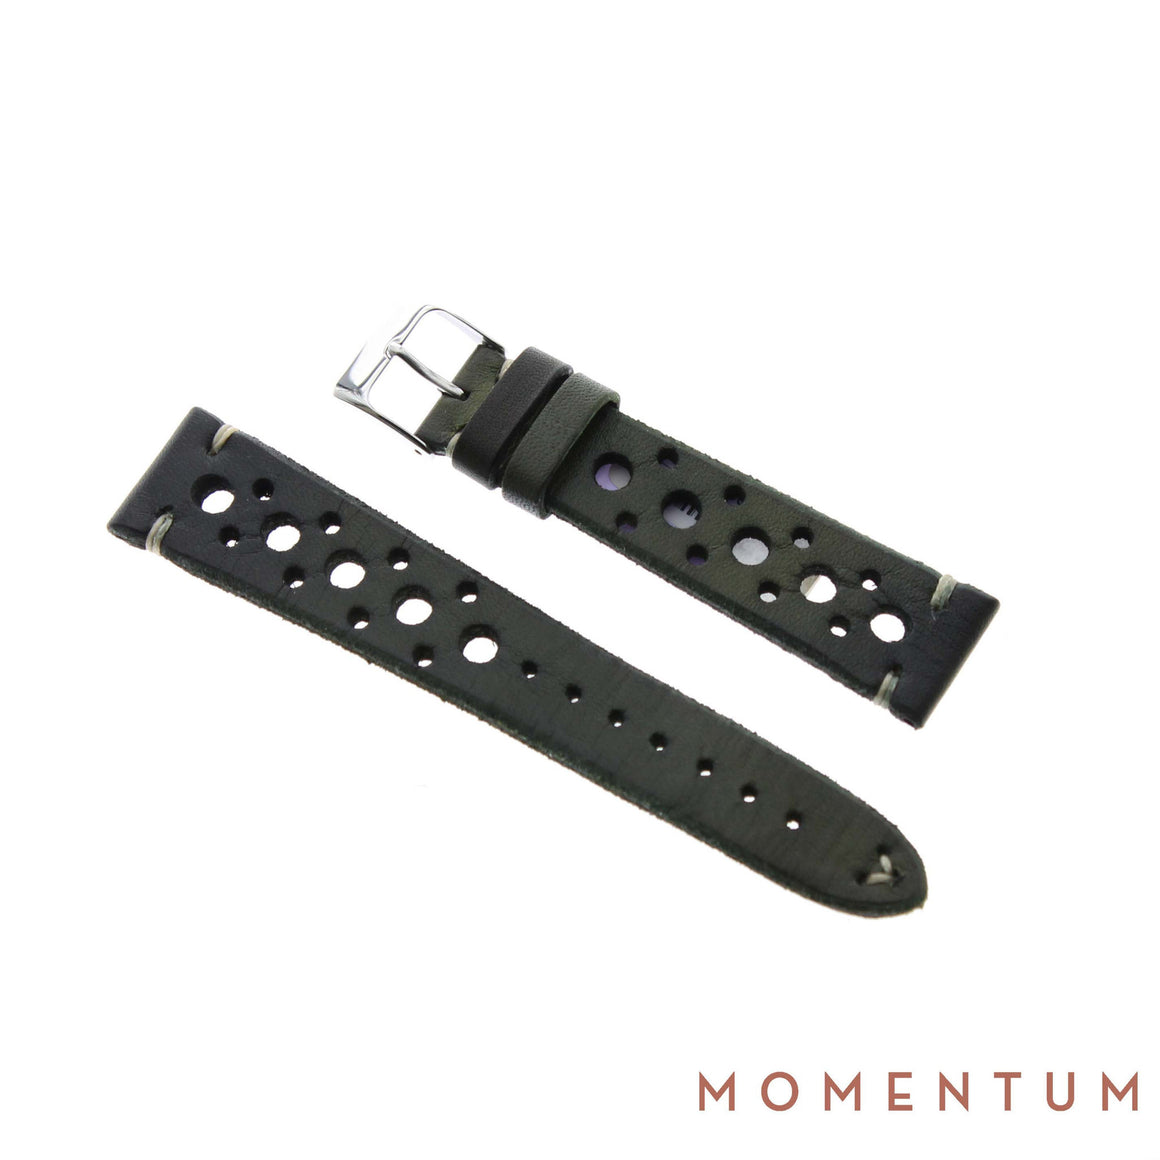 Vintage Strap - Olive Green Berluti style with holes - Calf Leather - Momentum Dubai